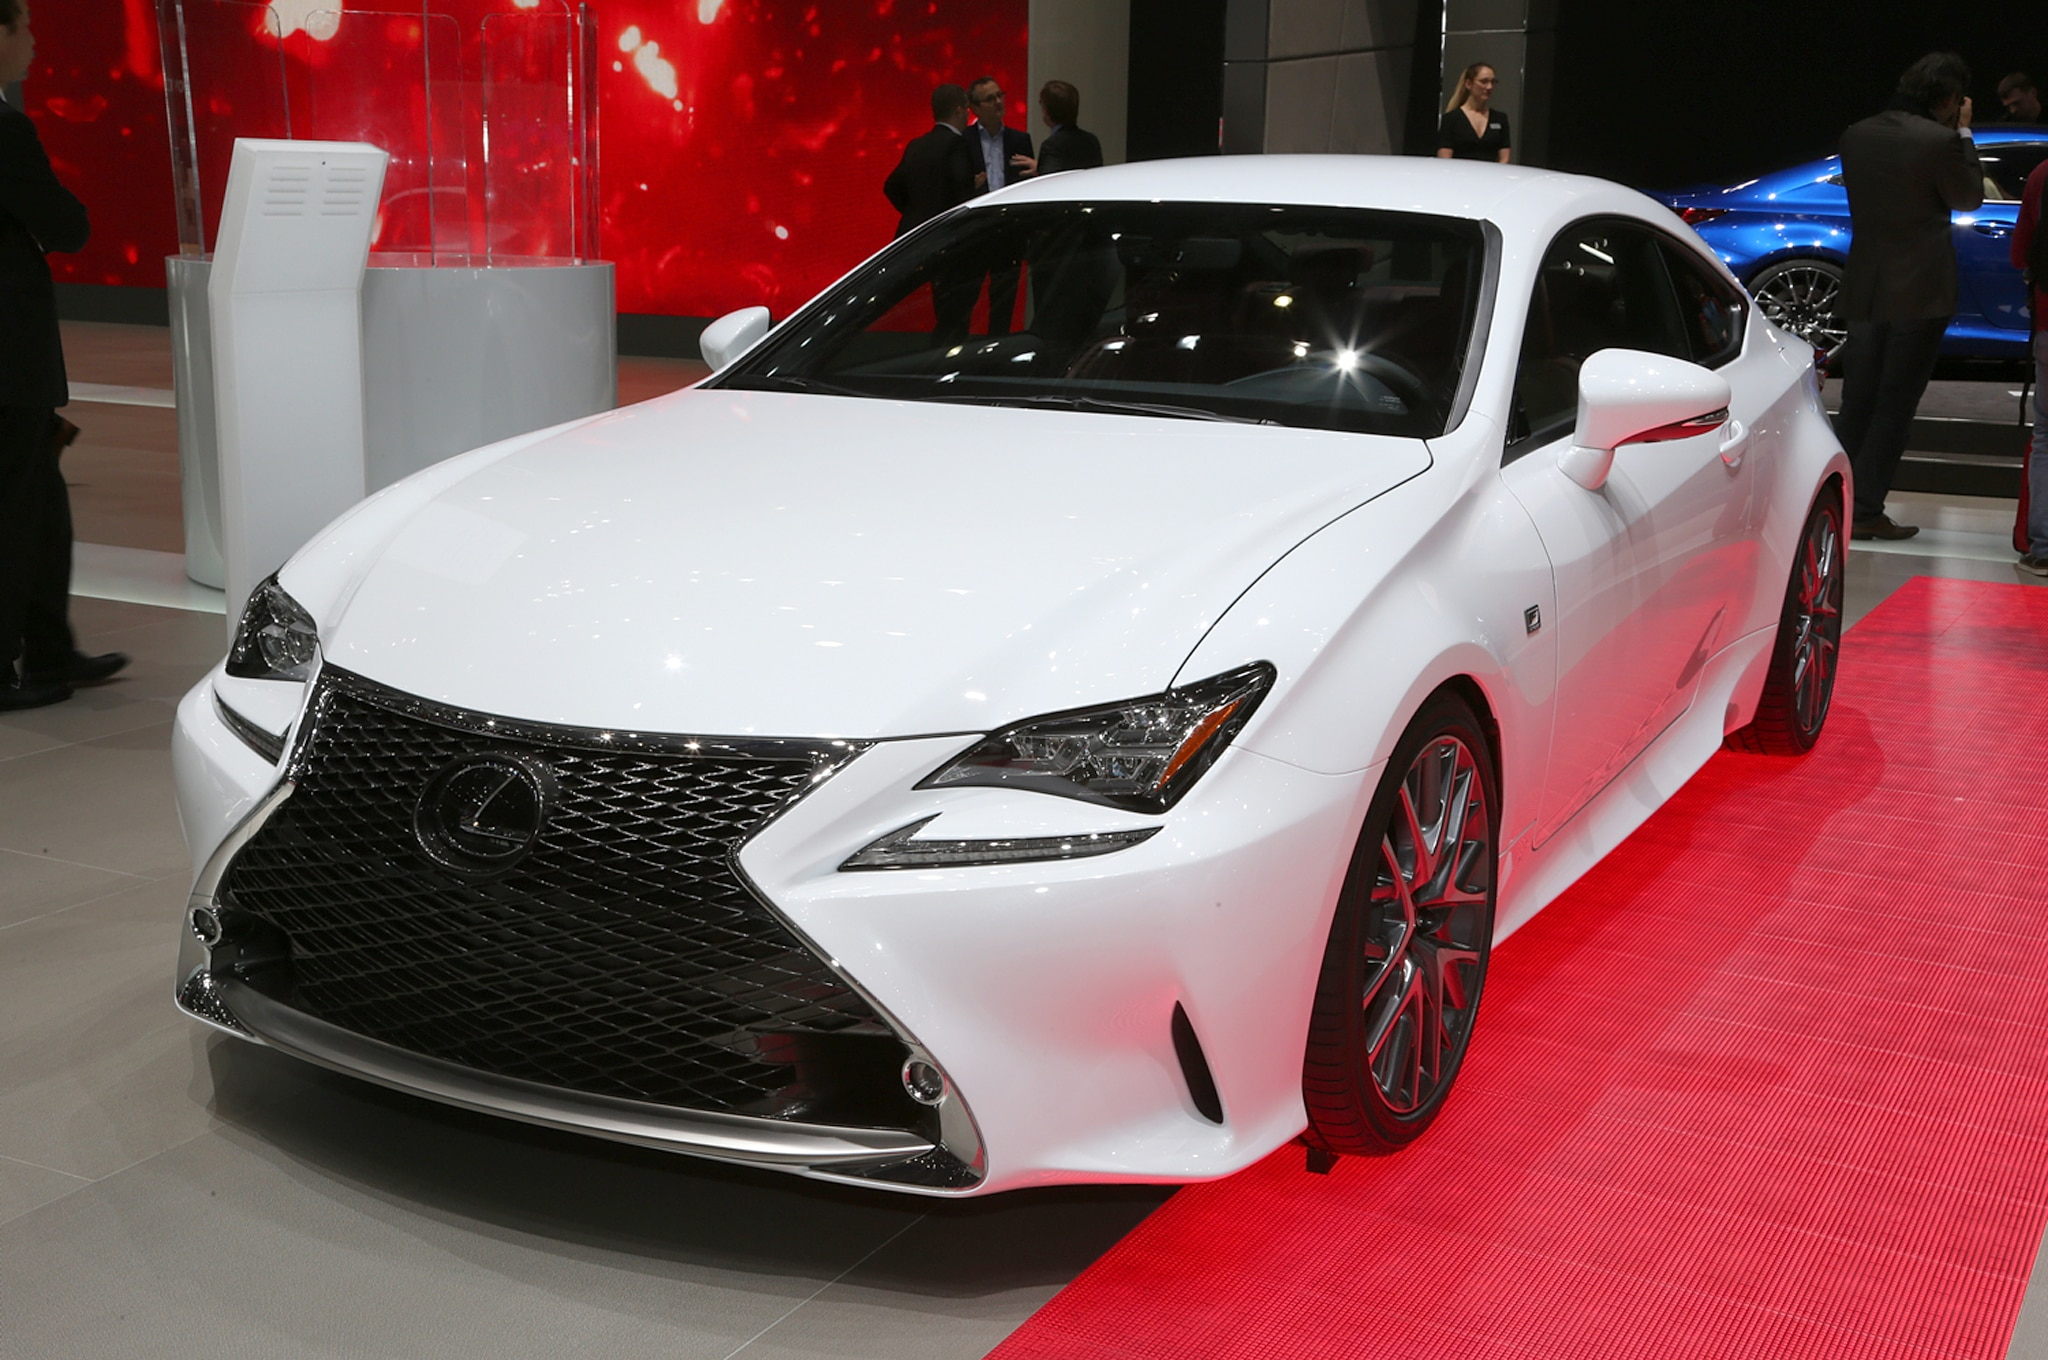 2015 Lexus Rc350 F Sport Rc F Race Car Debut In Geneva Automobile